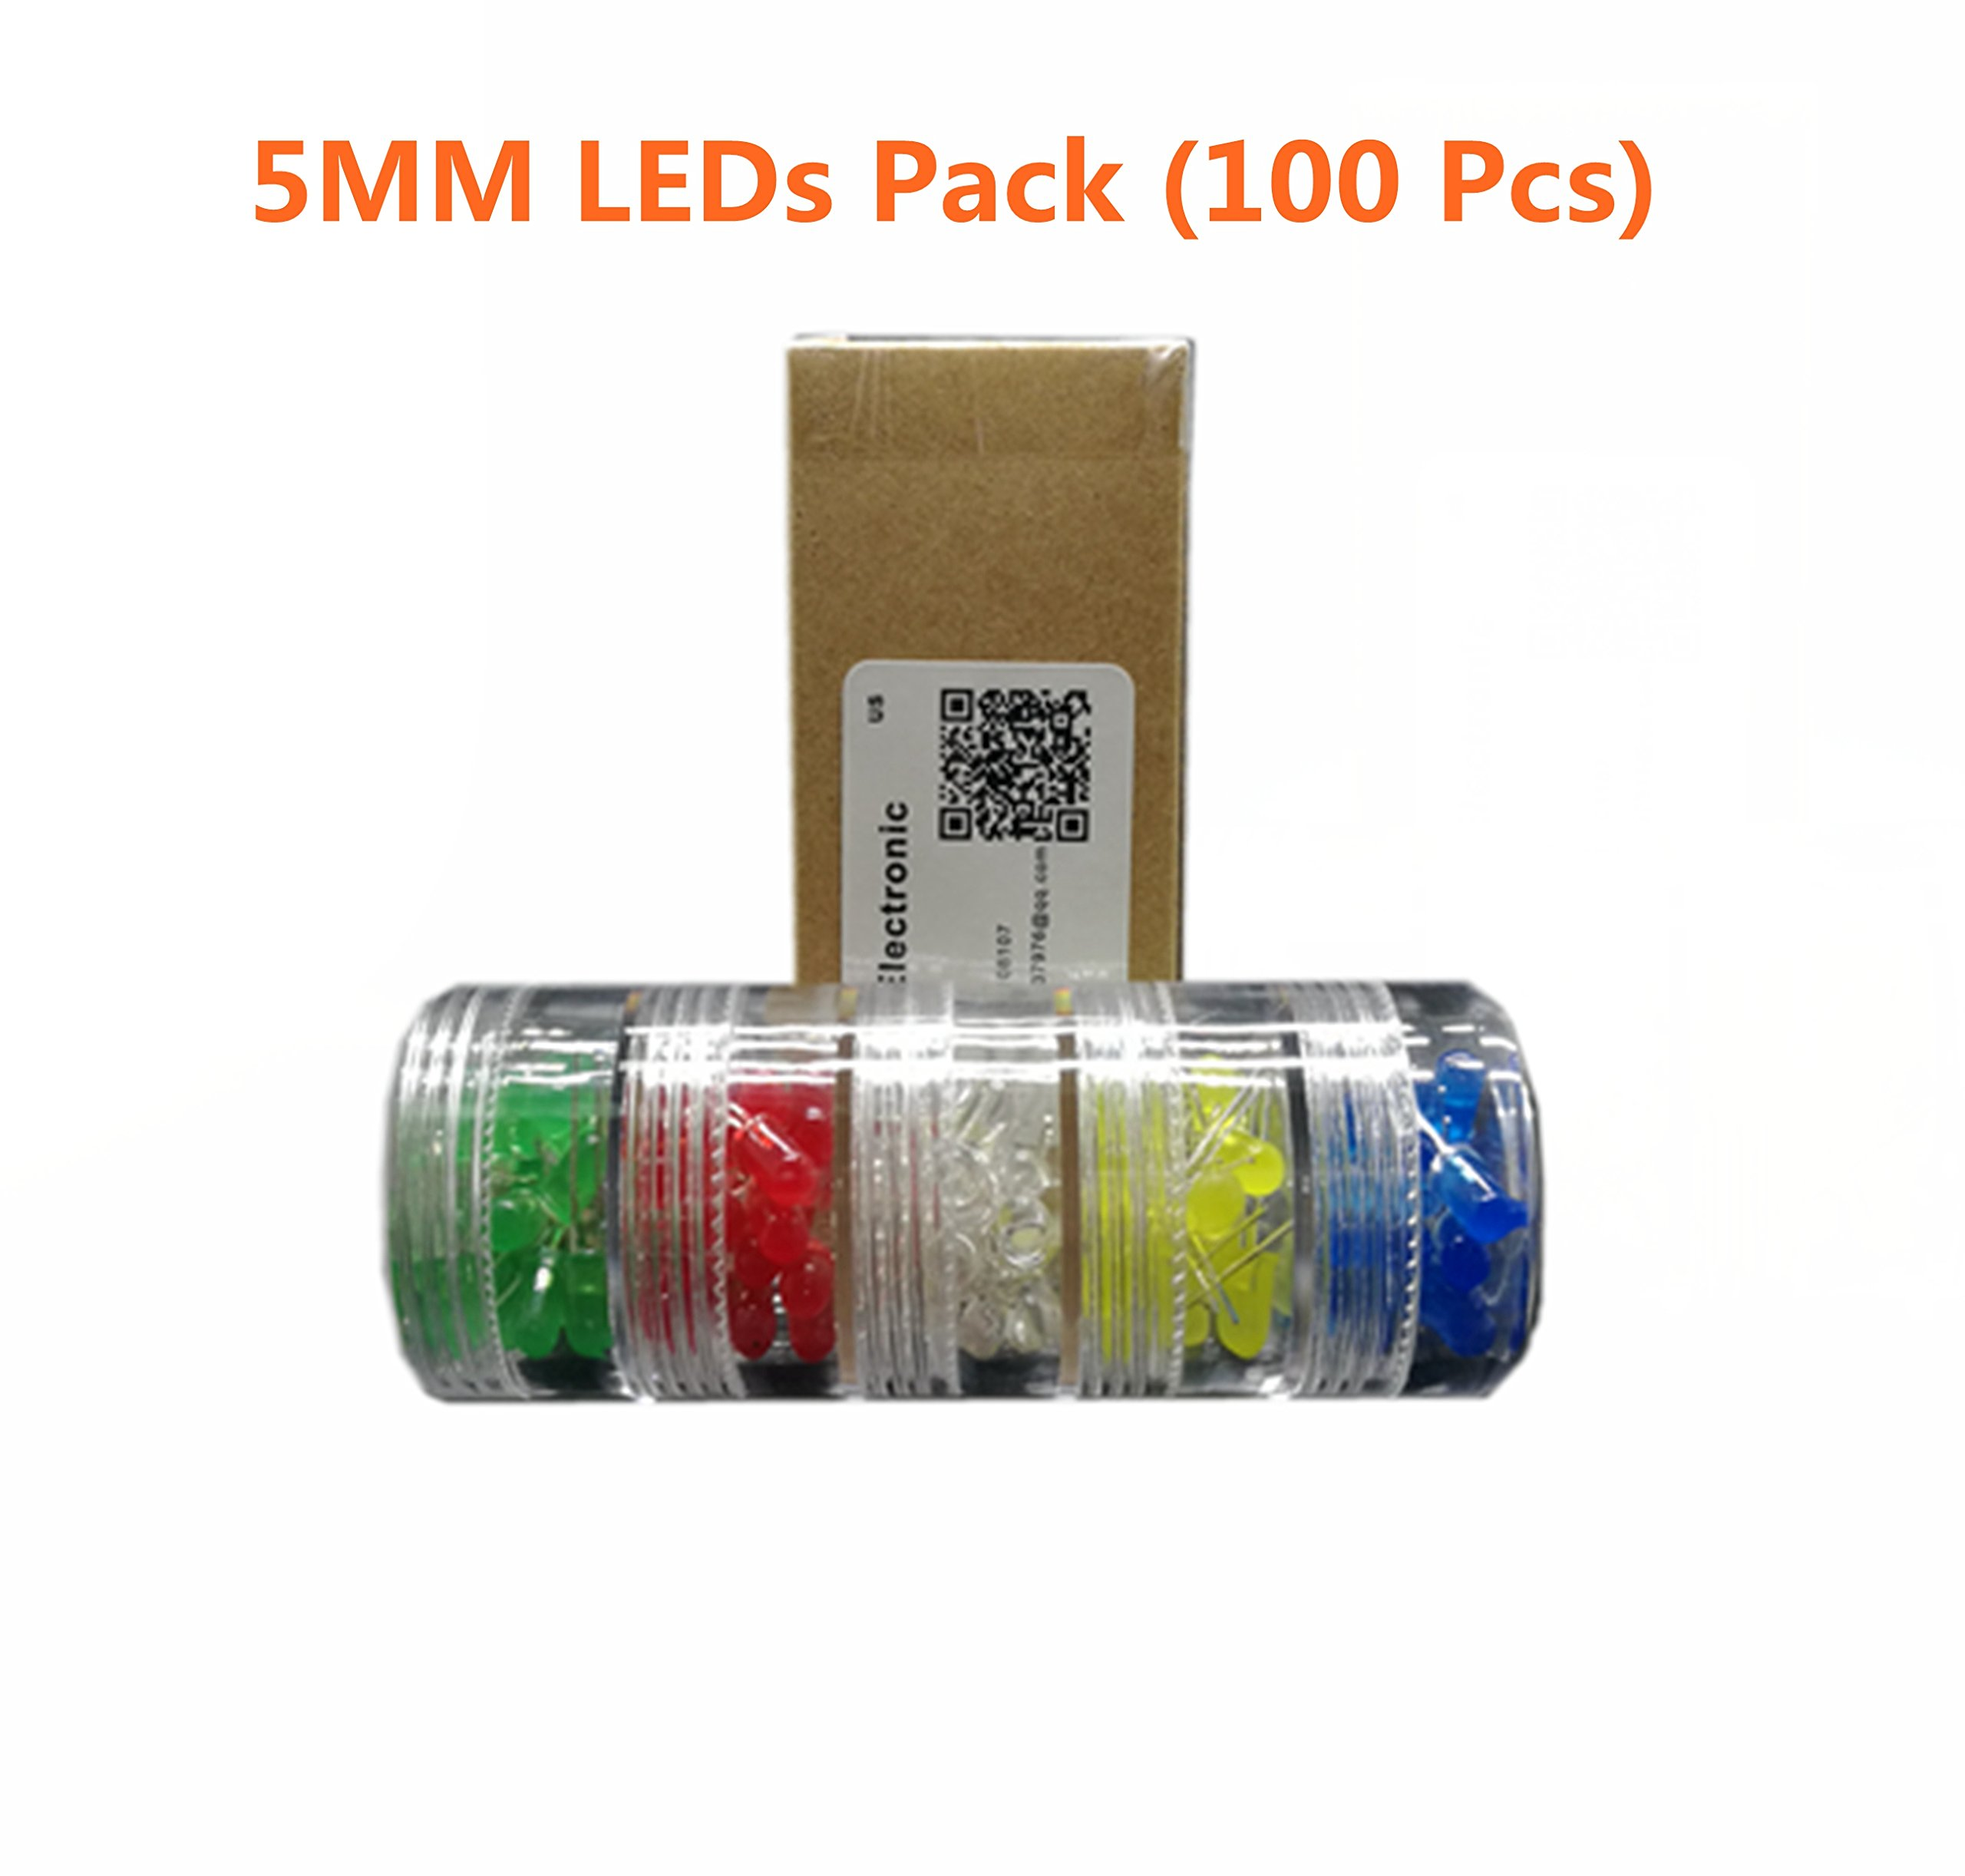 Cheap Diy Led Circuit Find Deals On Line At Alibabacom Two Flasher Uses Any Dc Supply From 3v To 12v Flash Rate Get Quotations 5mm 5 Different Colors100 Pcsit Is Ideal For Your Arduino